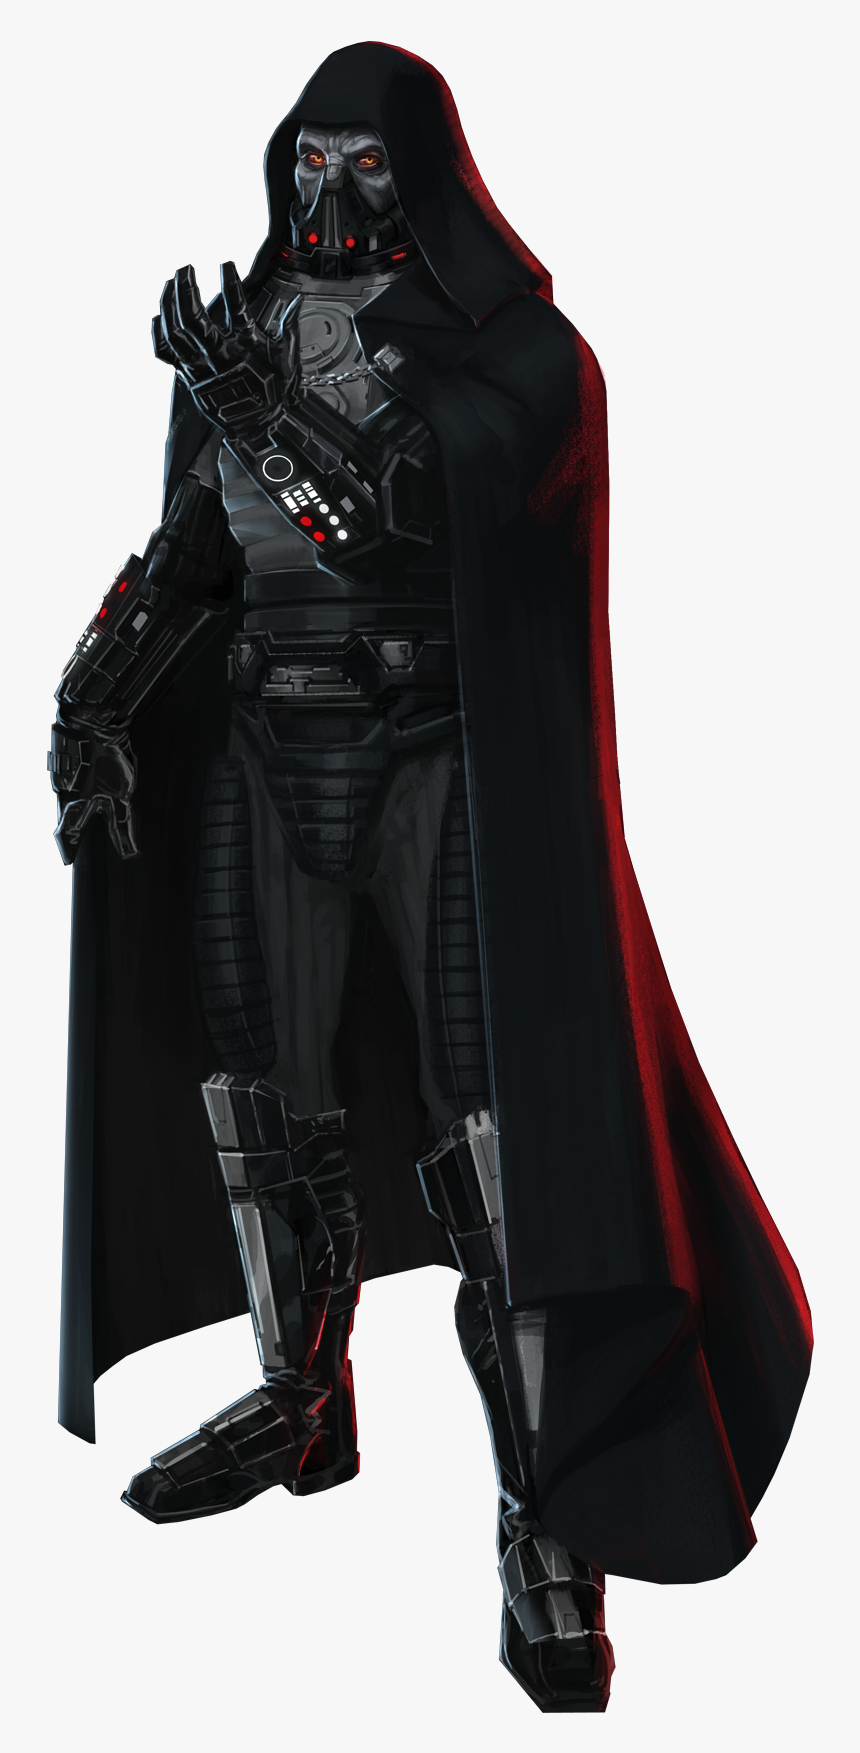 Sith Lord Png - Star Wars The Rise Of Skywalker Darth Maul, Transparent Png, Free Download